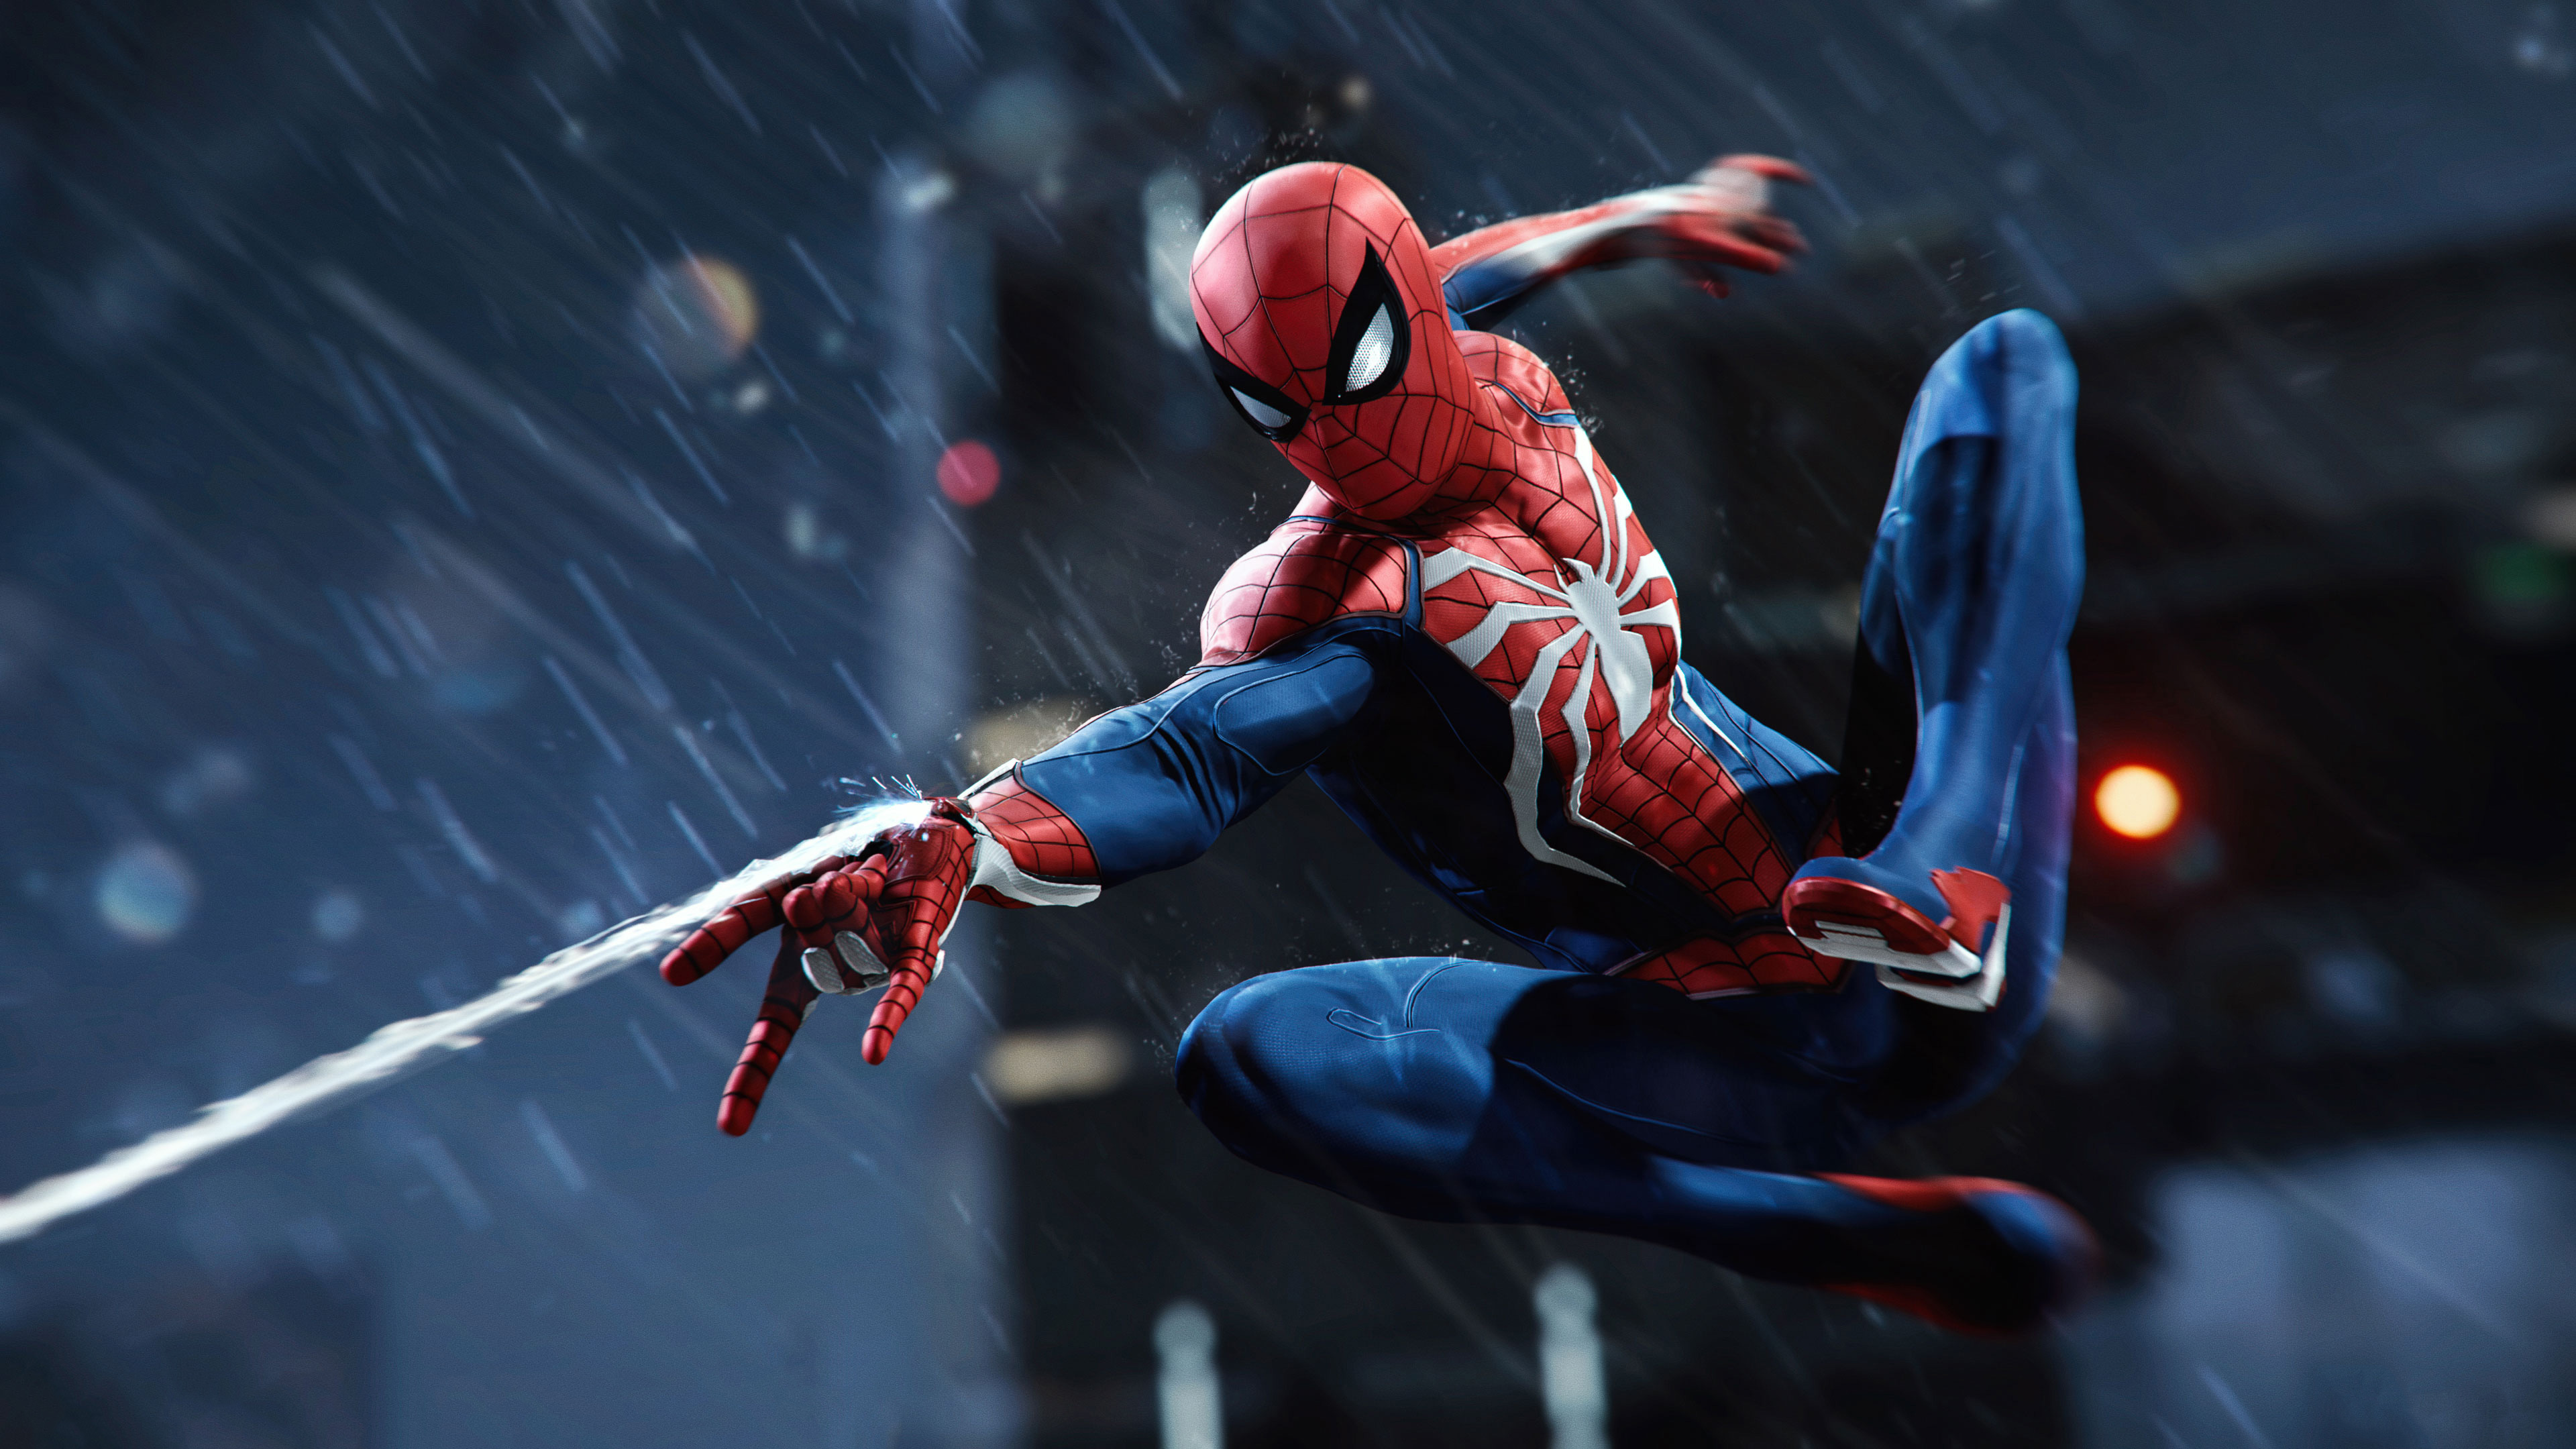 Spiderman Ps4 2018 E3 Hd Games 4k Wallpapers Images Backgrounds